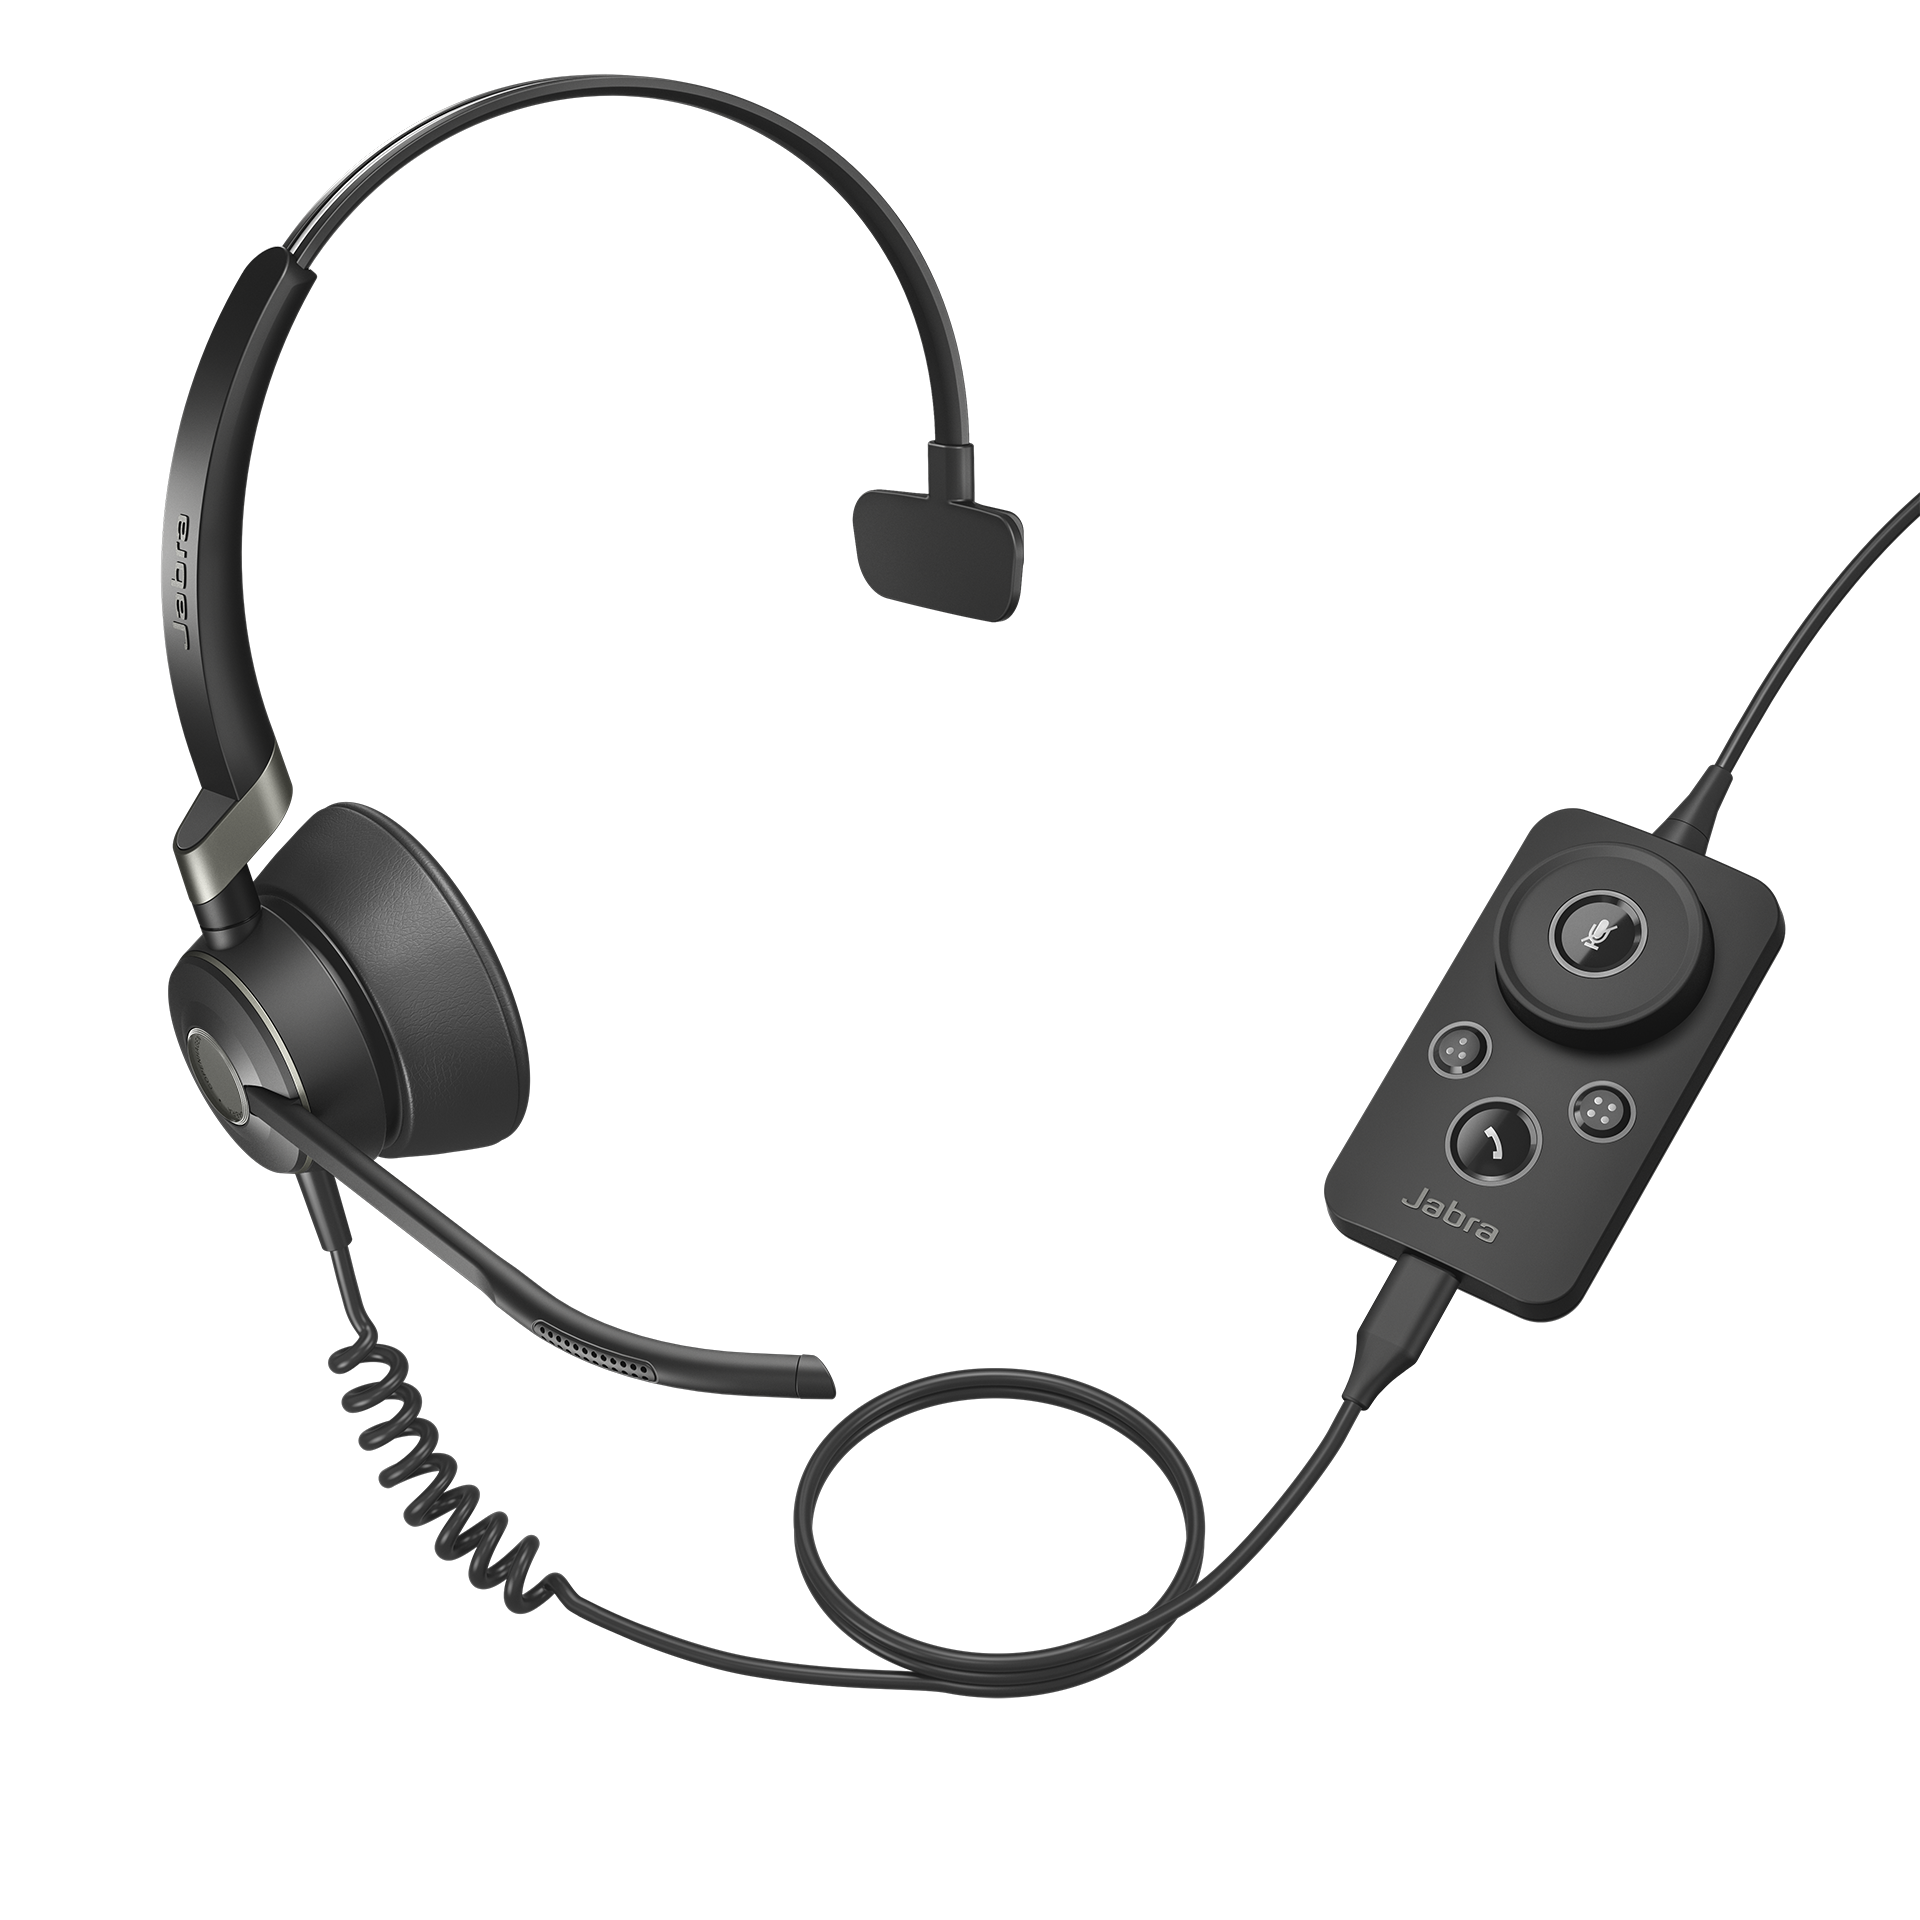 Jabra_Engage_50_Mono_with_cable_and_control_unit.png